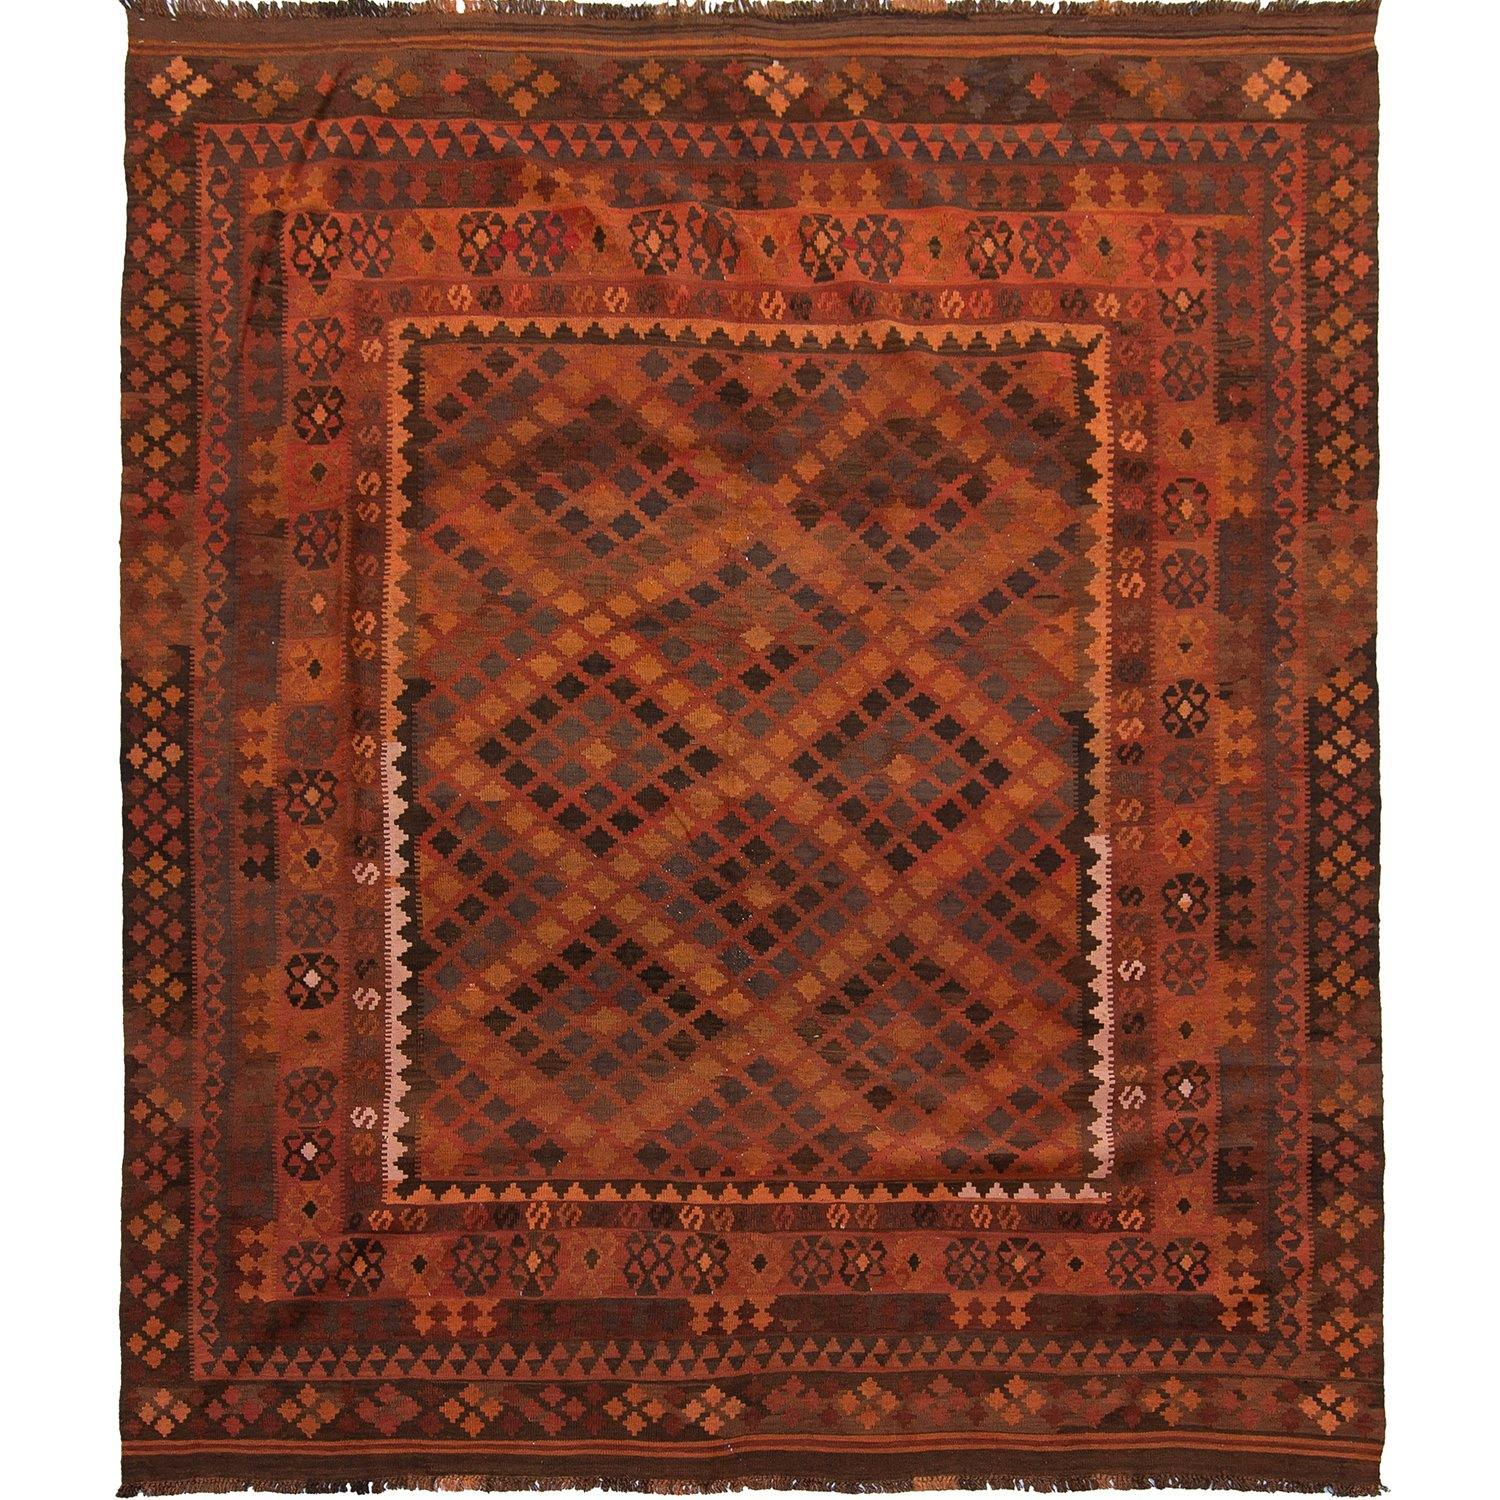 Fine Hand-Woven 100% Wool Kilim Rug 258cm x  307cm Persian-Rug | House-of-Haghi | NewMarket | Auckland | NZ | Handmade Persian Rugs | Hand Knotted Persian Rugs